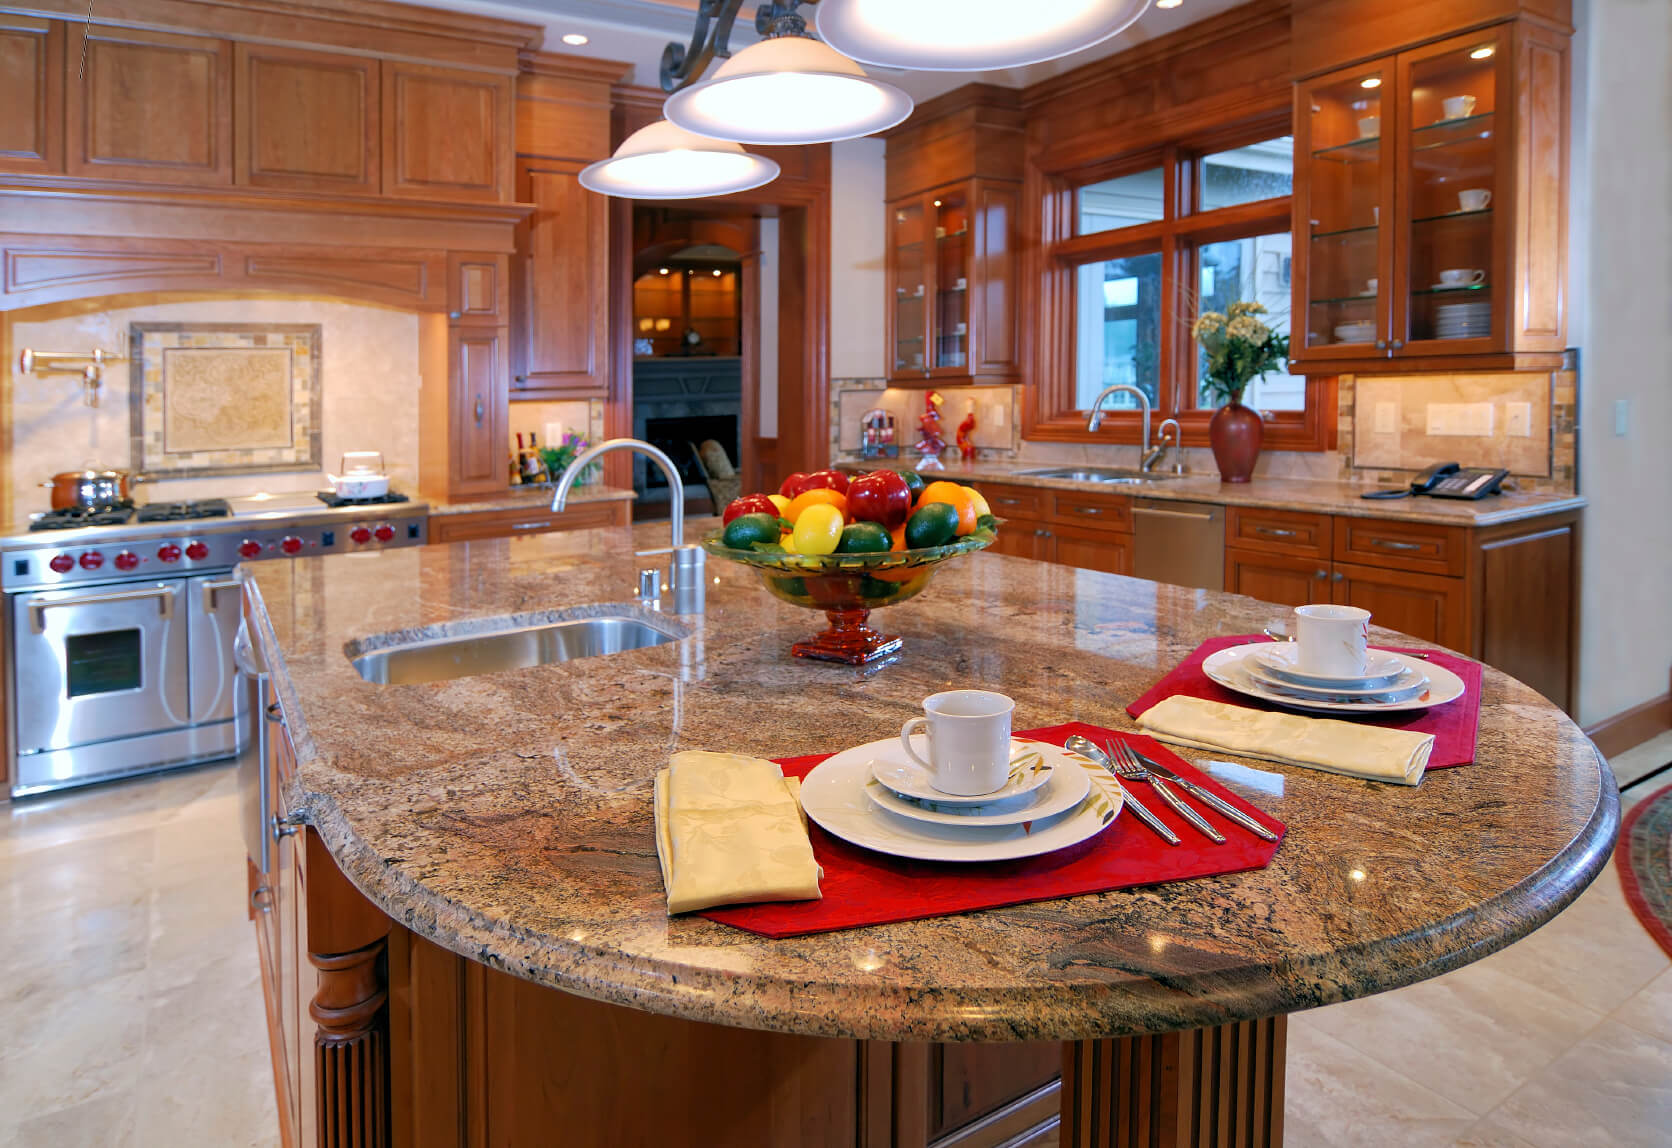 Kitchen island custom designs - Rich Patterned Marble Countertop Extends To Round Dining Space On This Natural Wood Island